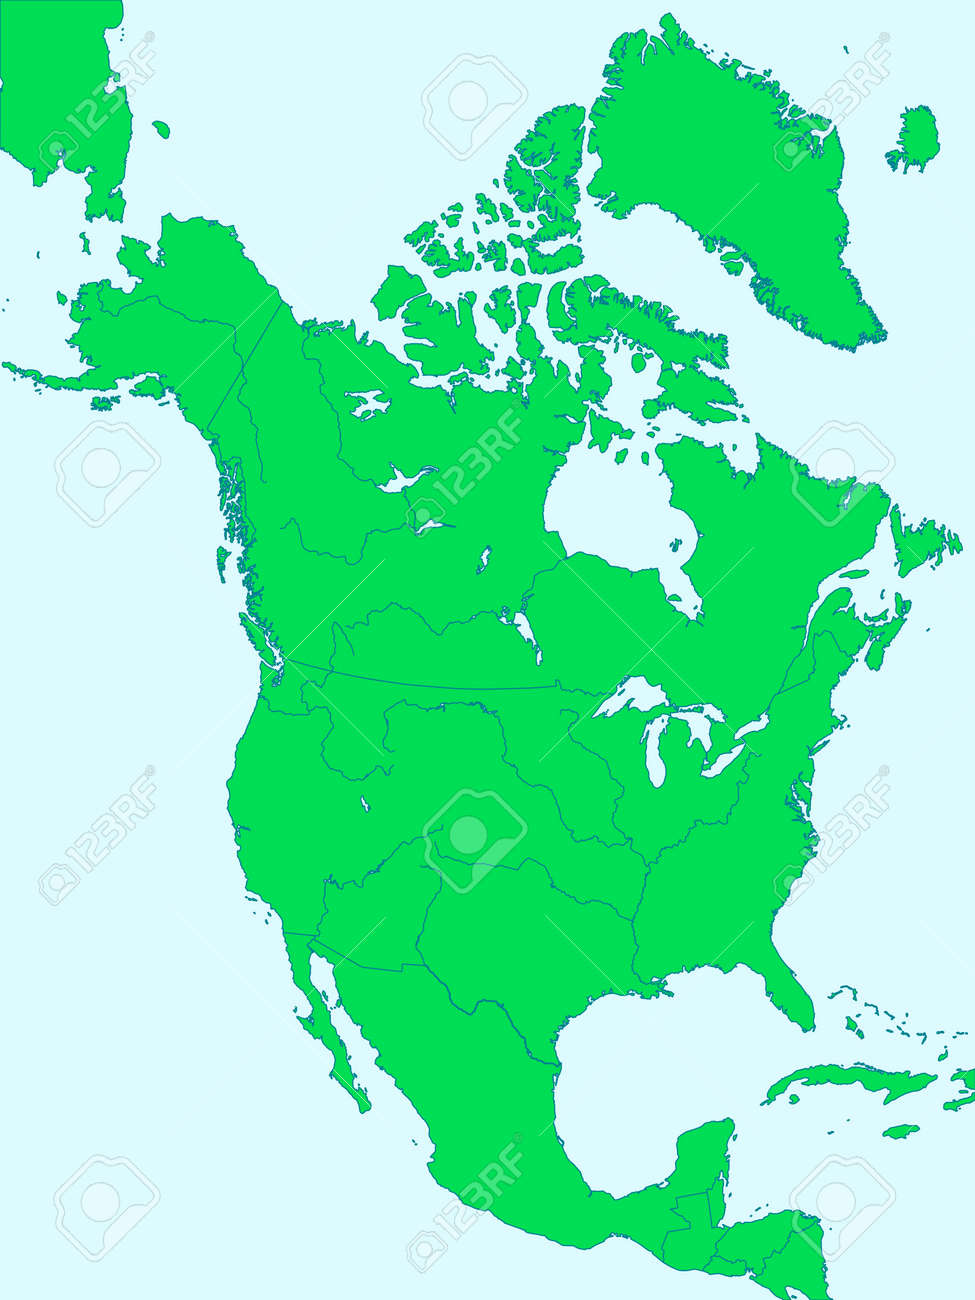 Silhouette Map Of The North America With Major Rivers And Lakes - America map with rivers